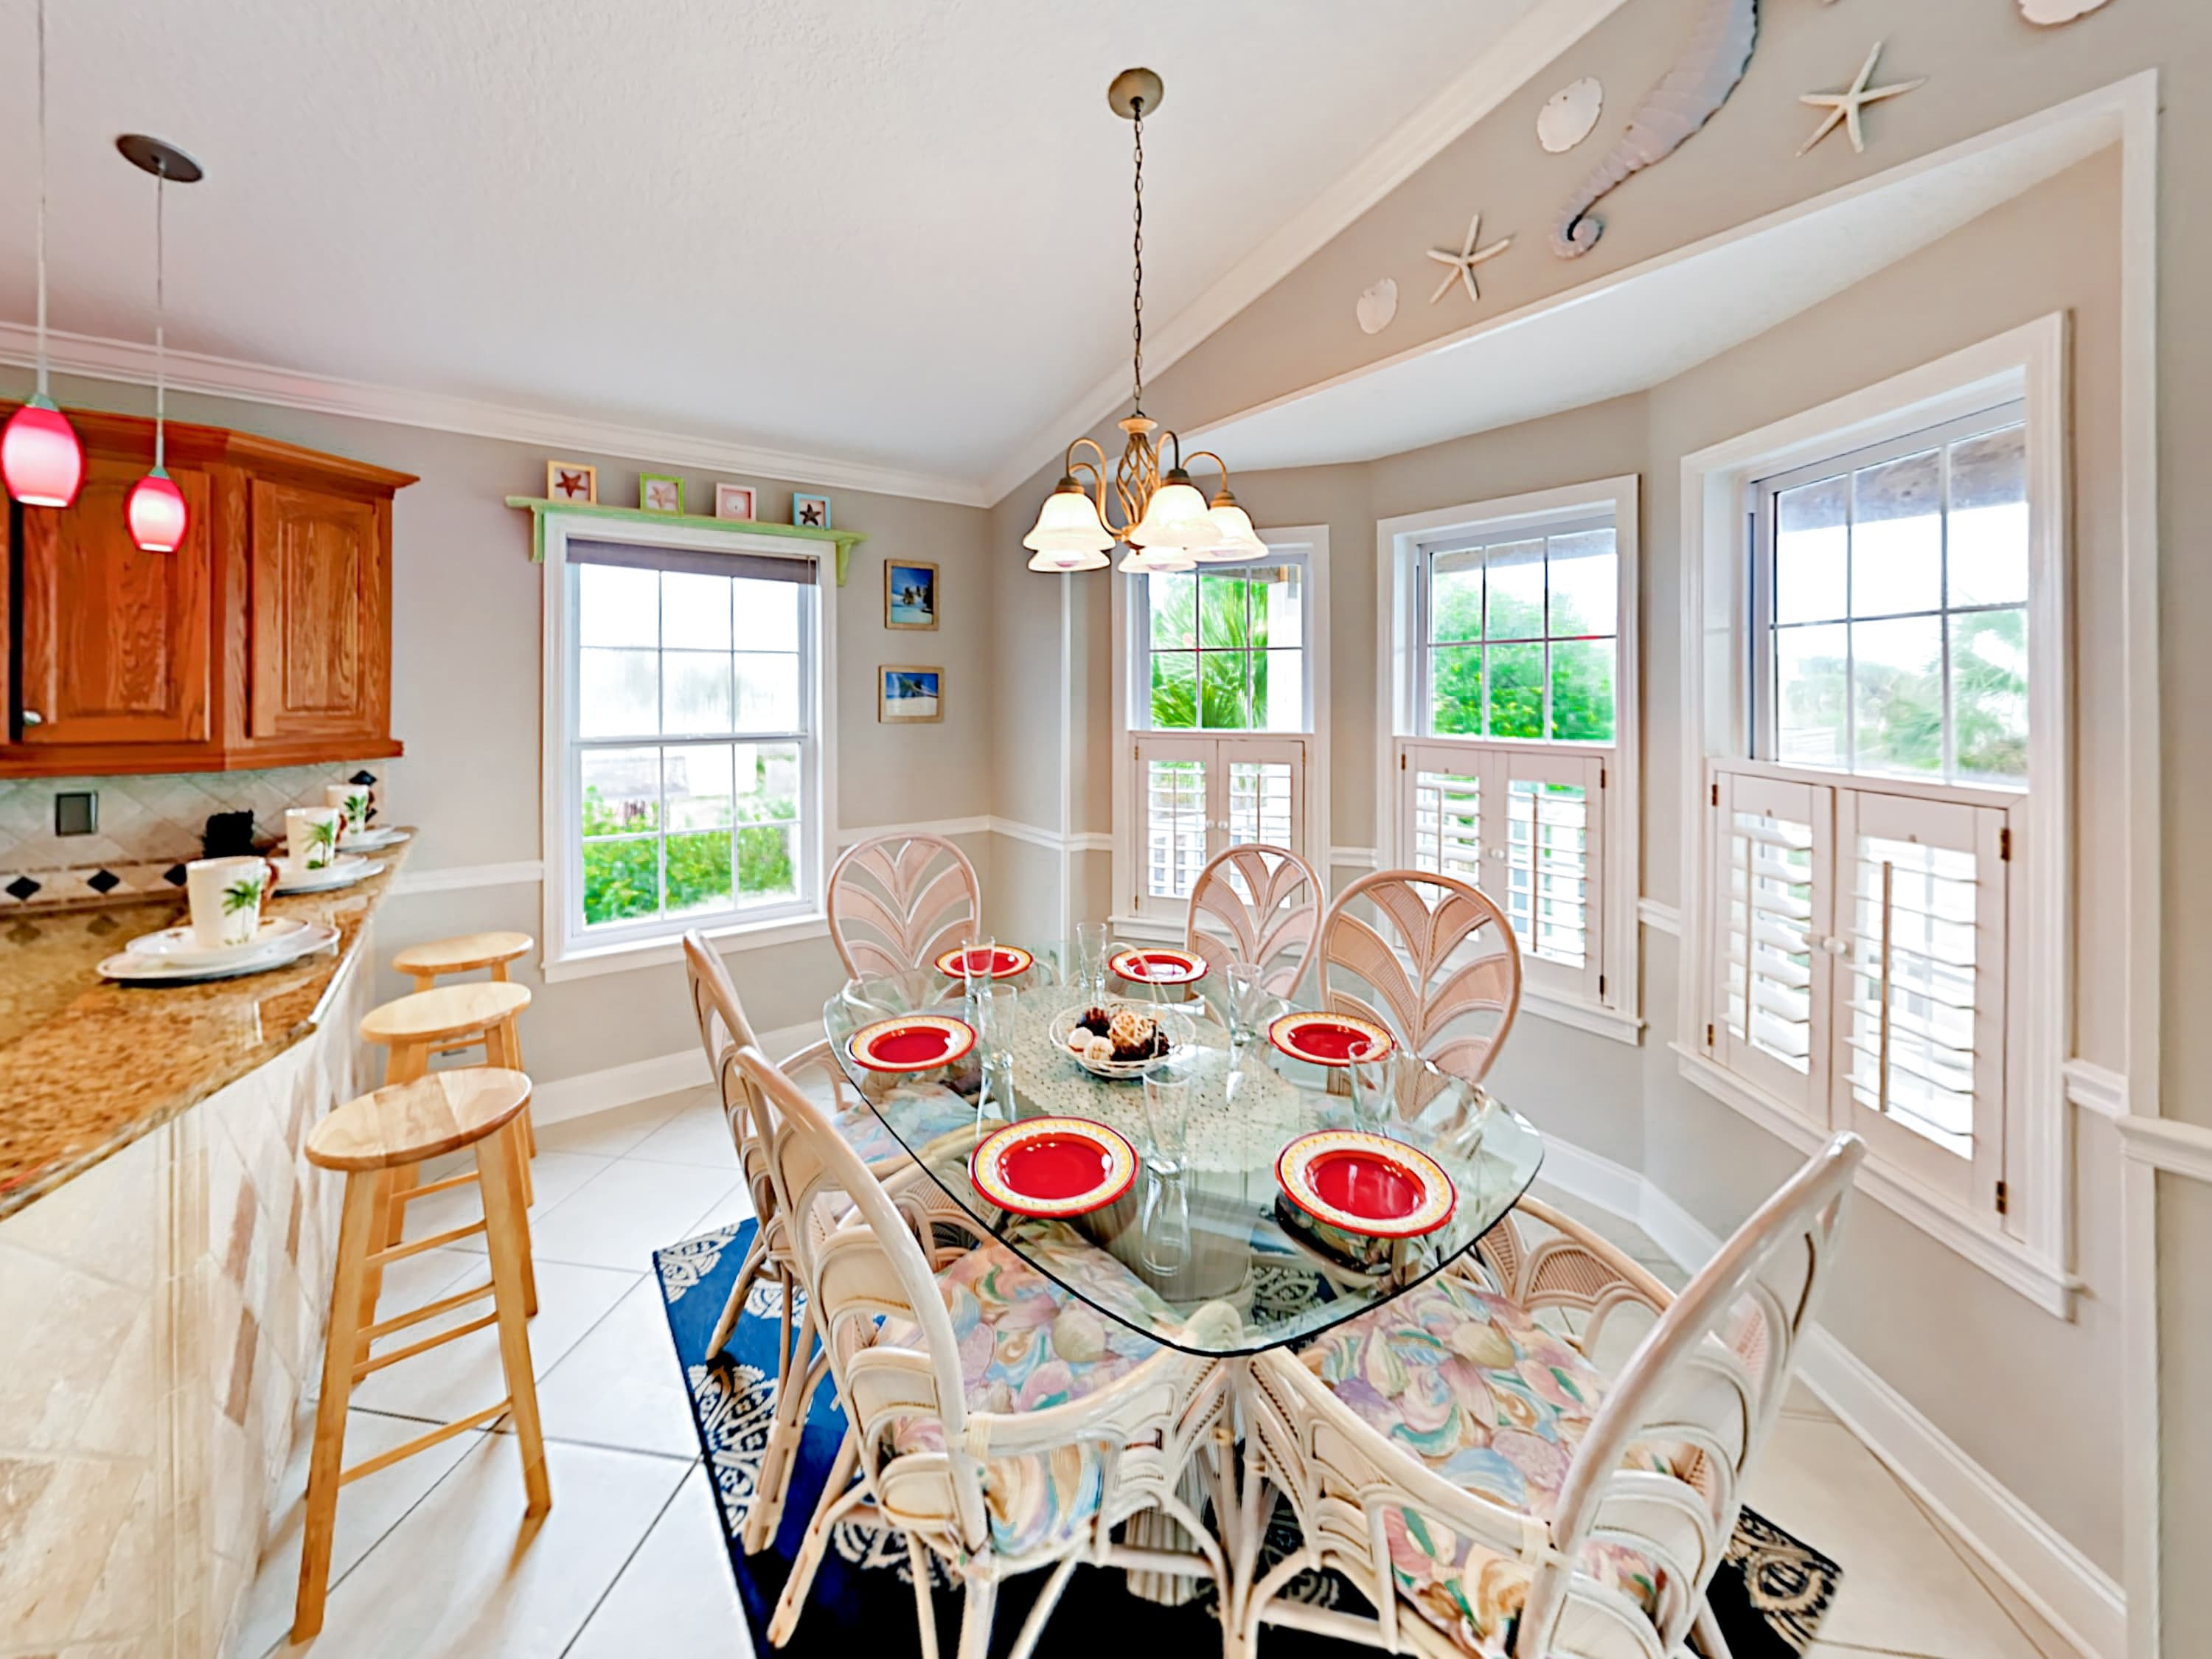 A glass dining table offers seating for 6.